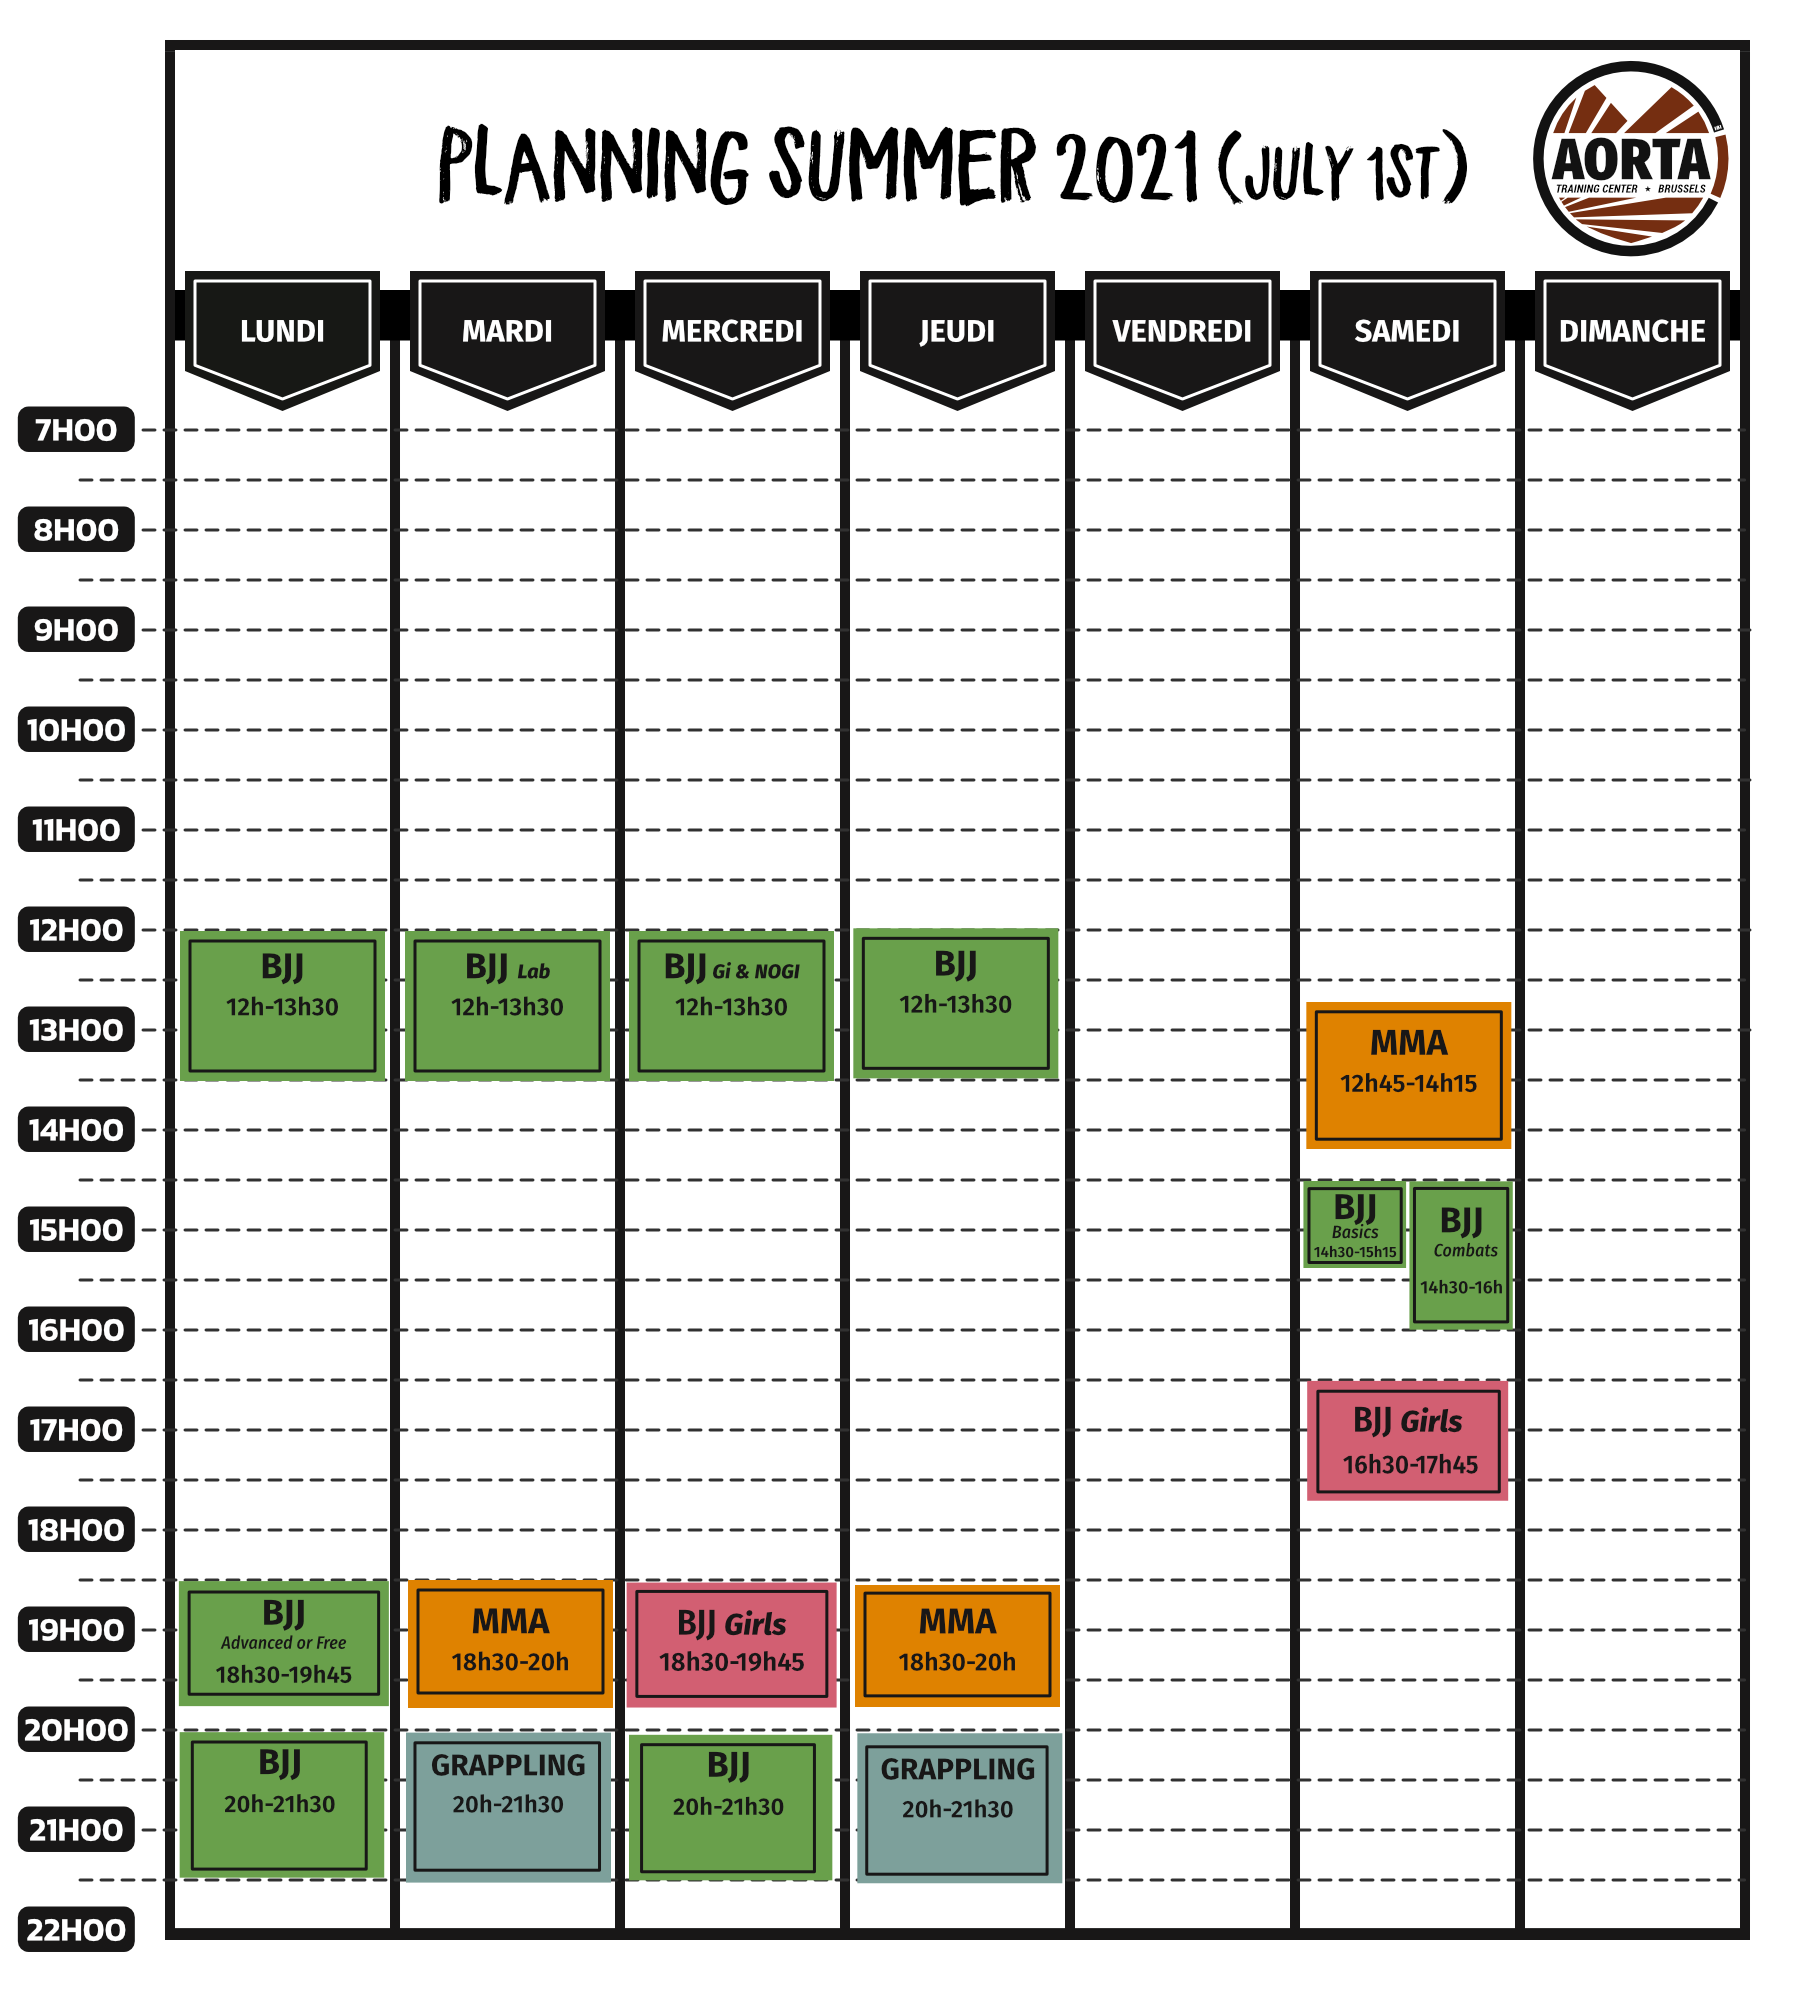 Summer schedule (From July 1st to August 31st 2021)